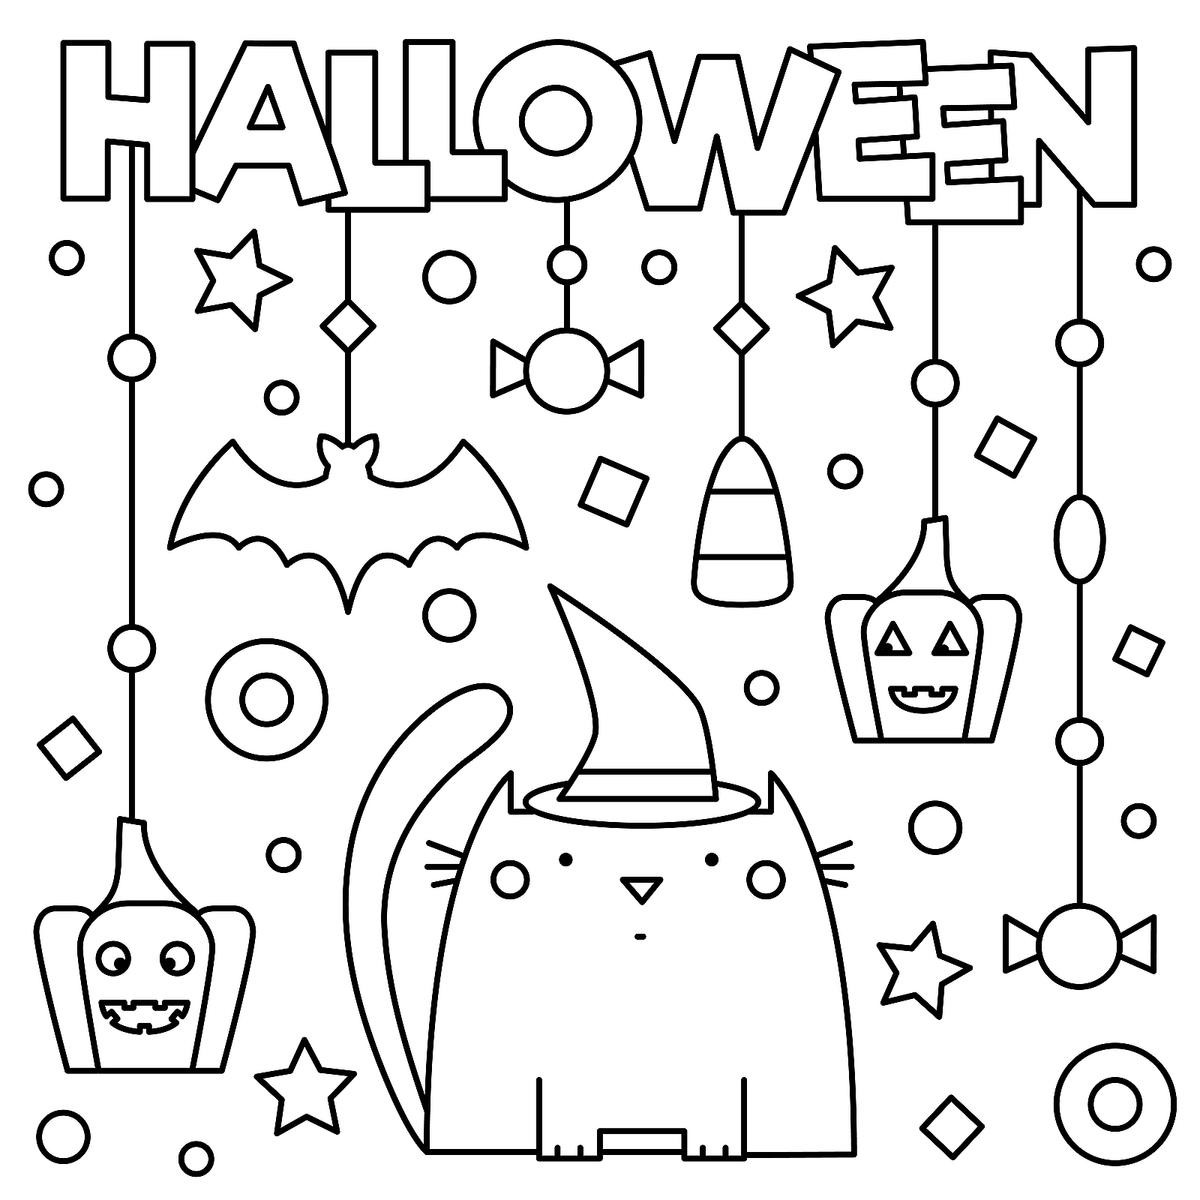 Halloween Coloring Sheets For Kids  Halloween Coloring Pages 10 Free Spooky Printable